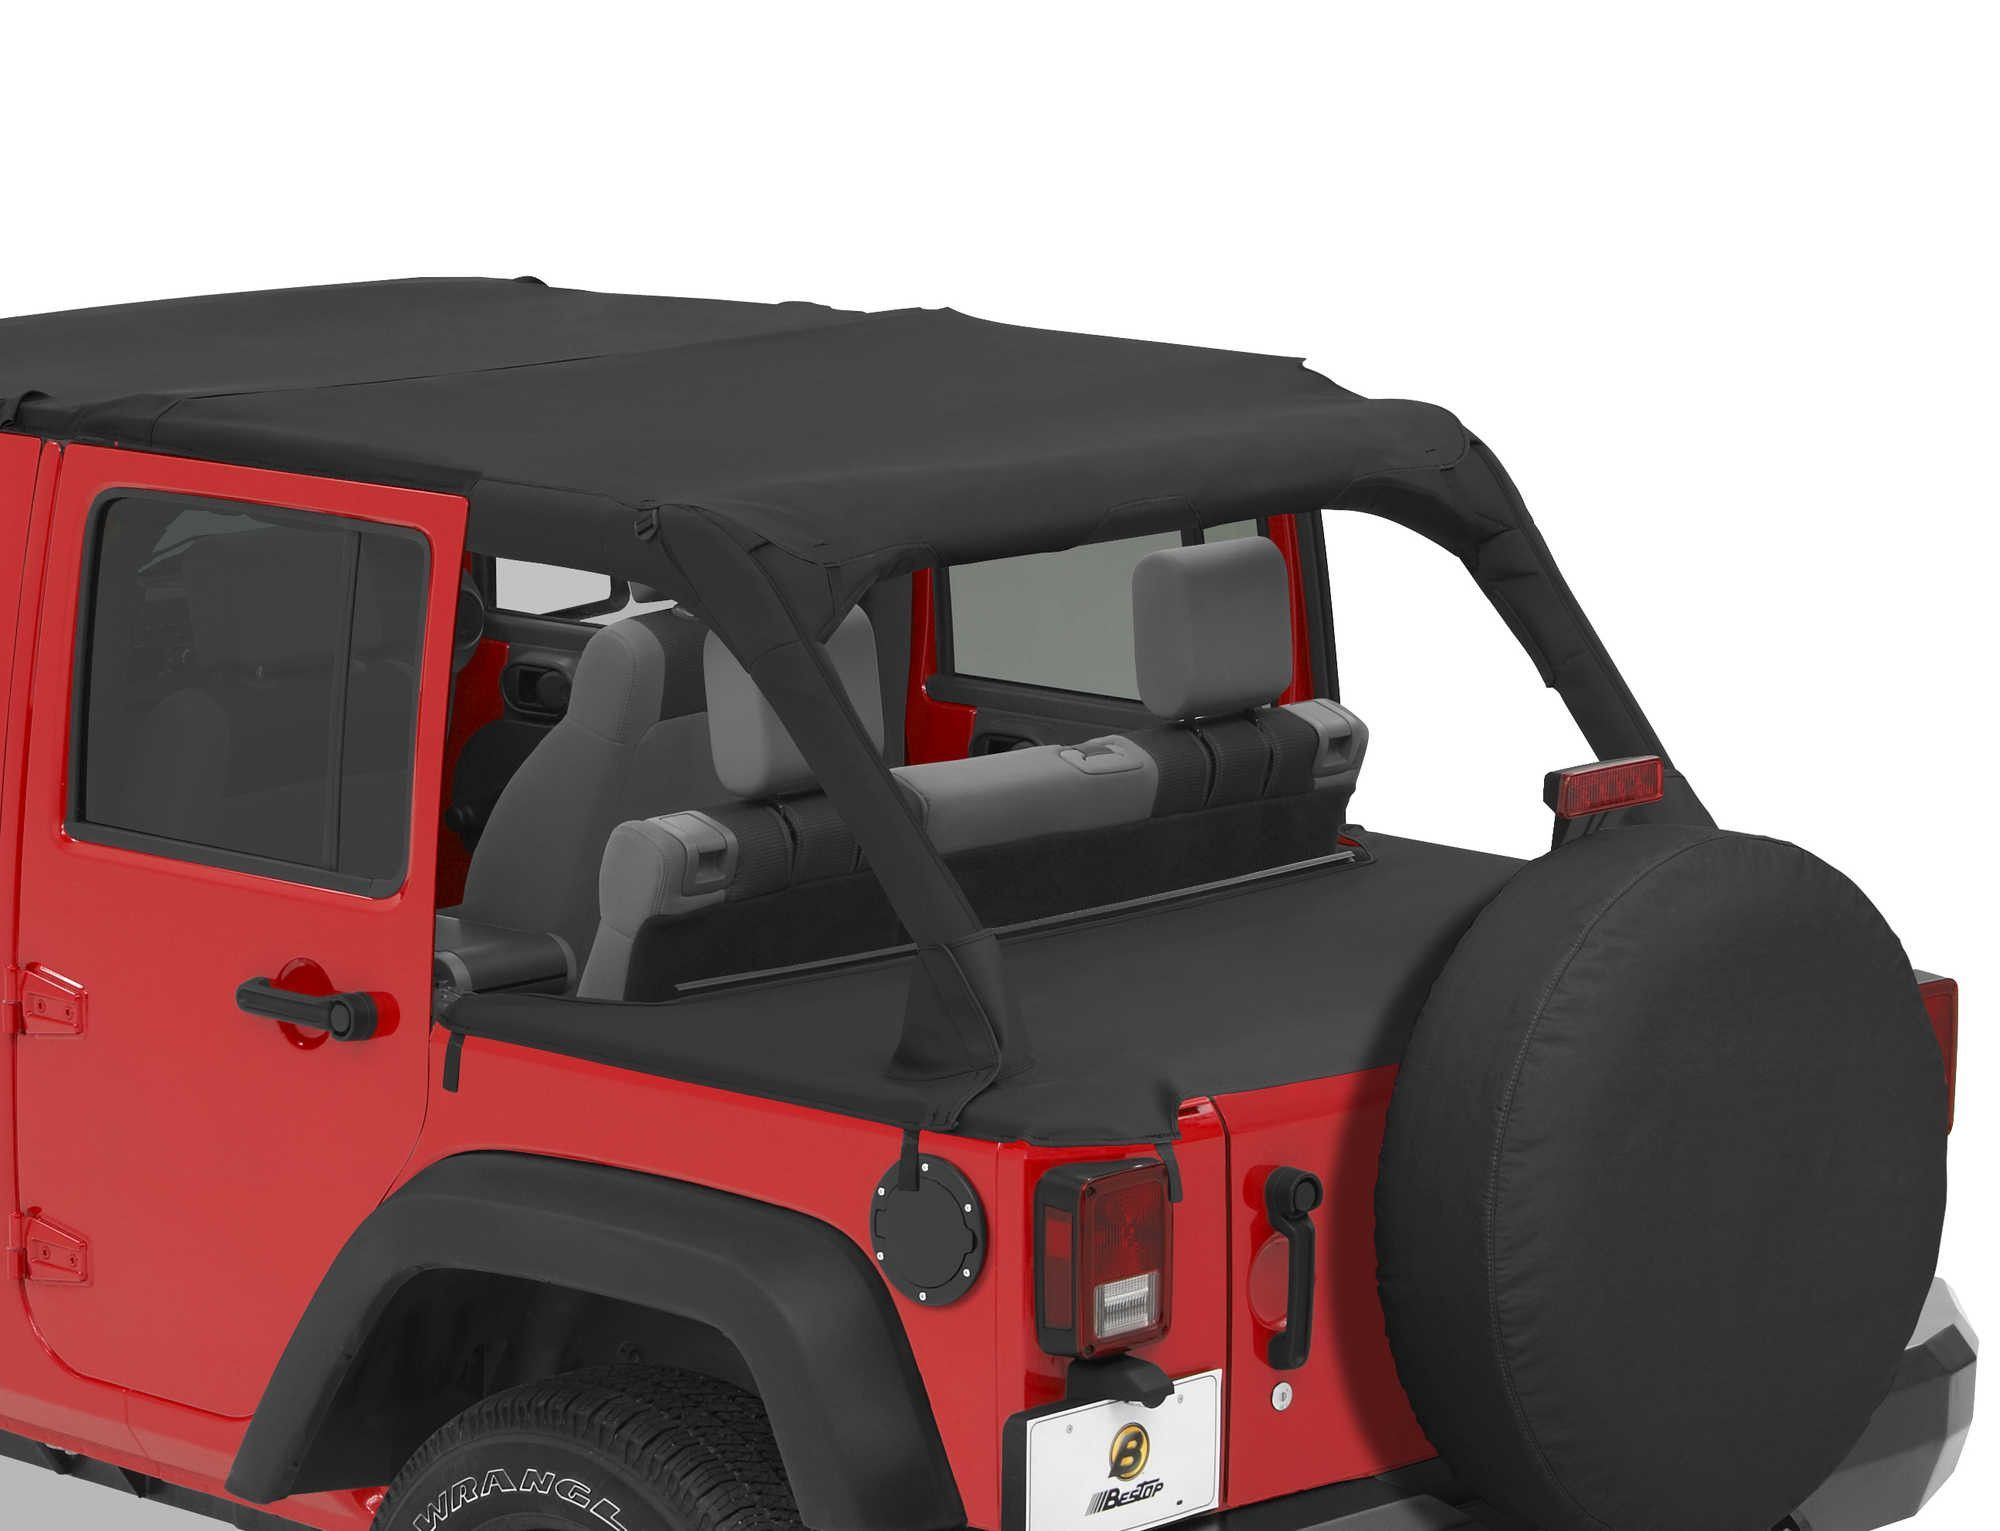 Bestop Duster Deck Cover For 07 16 Jeep Wrangler Unlimited Jk 4 Door Jeep Wrangler Jeep Wrangler Jk 4 Door Jeep Wrangler